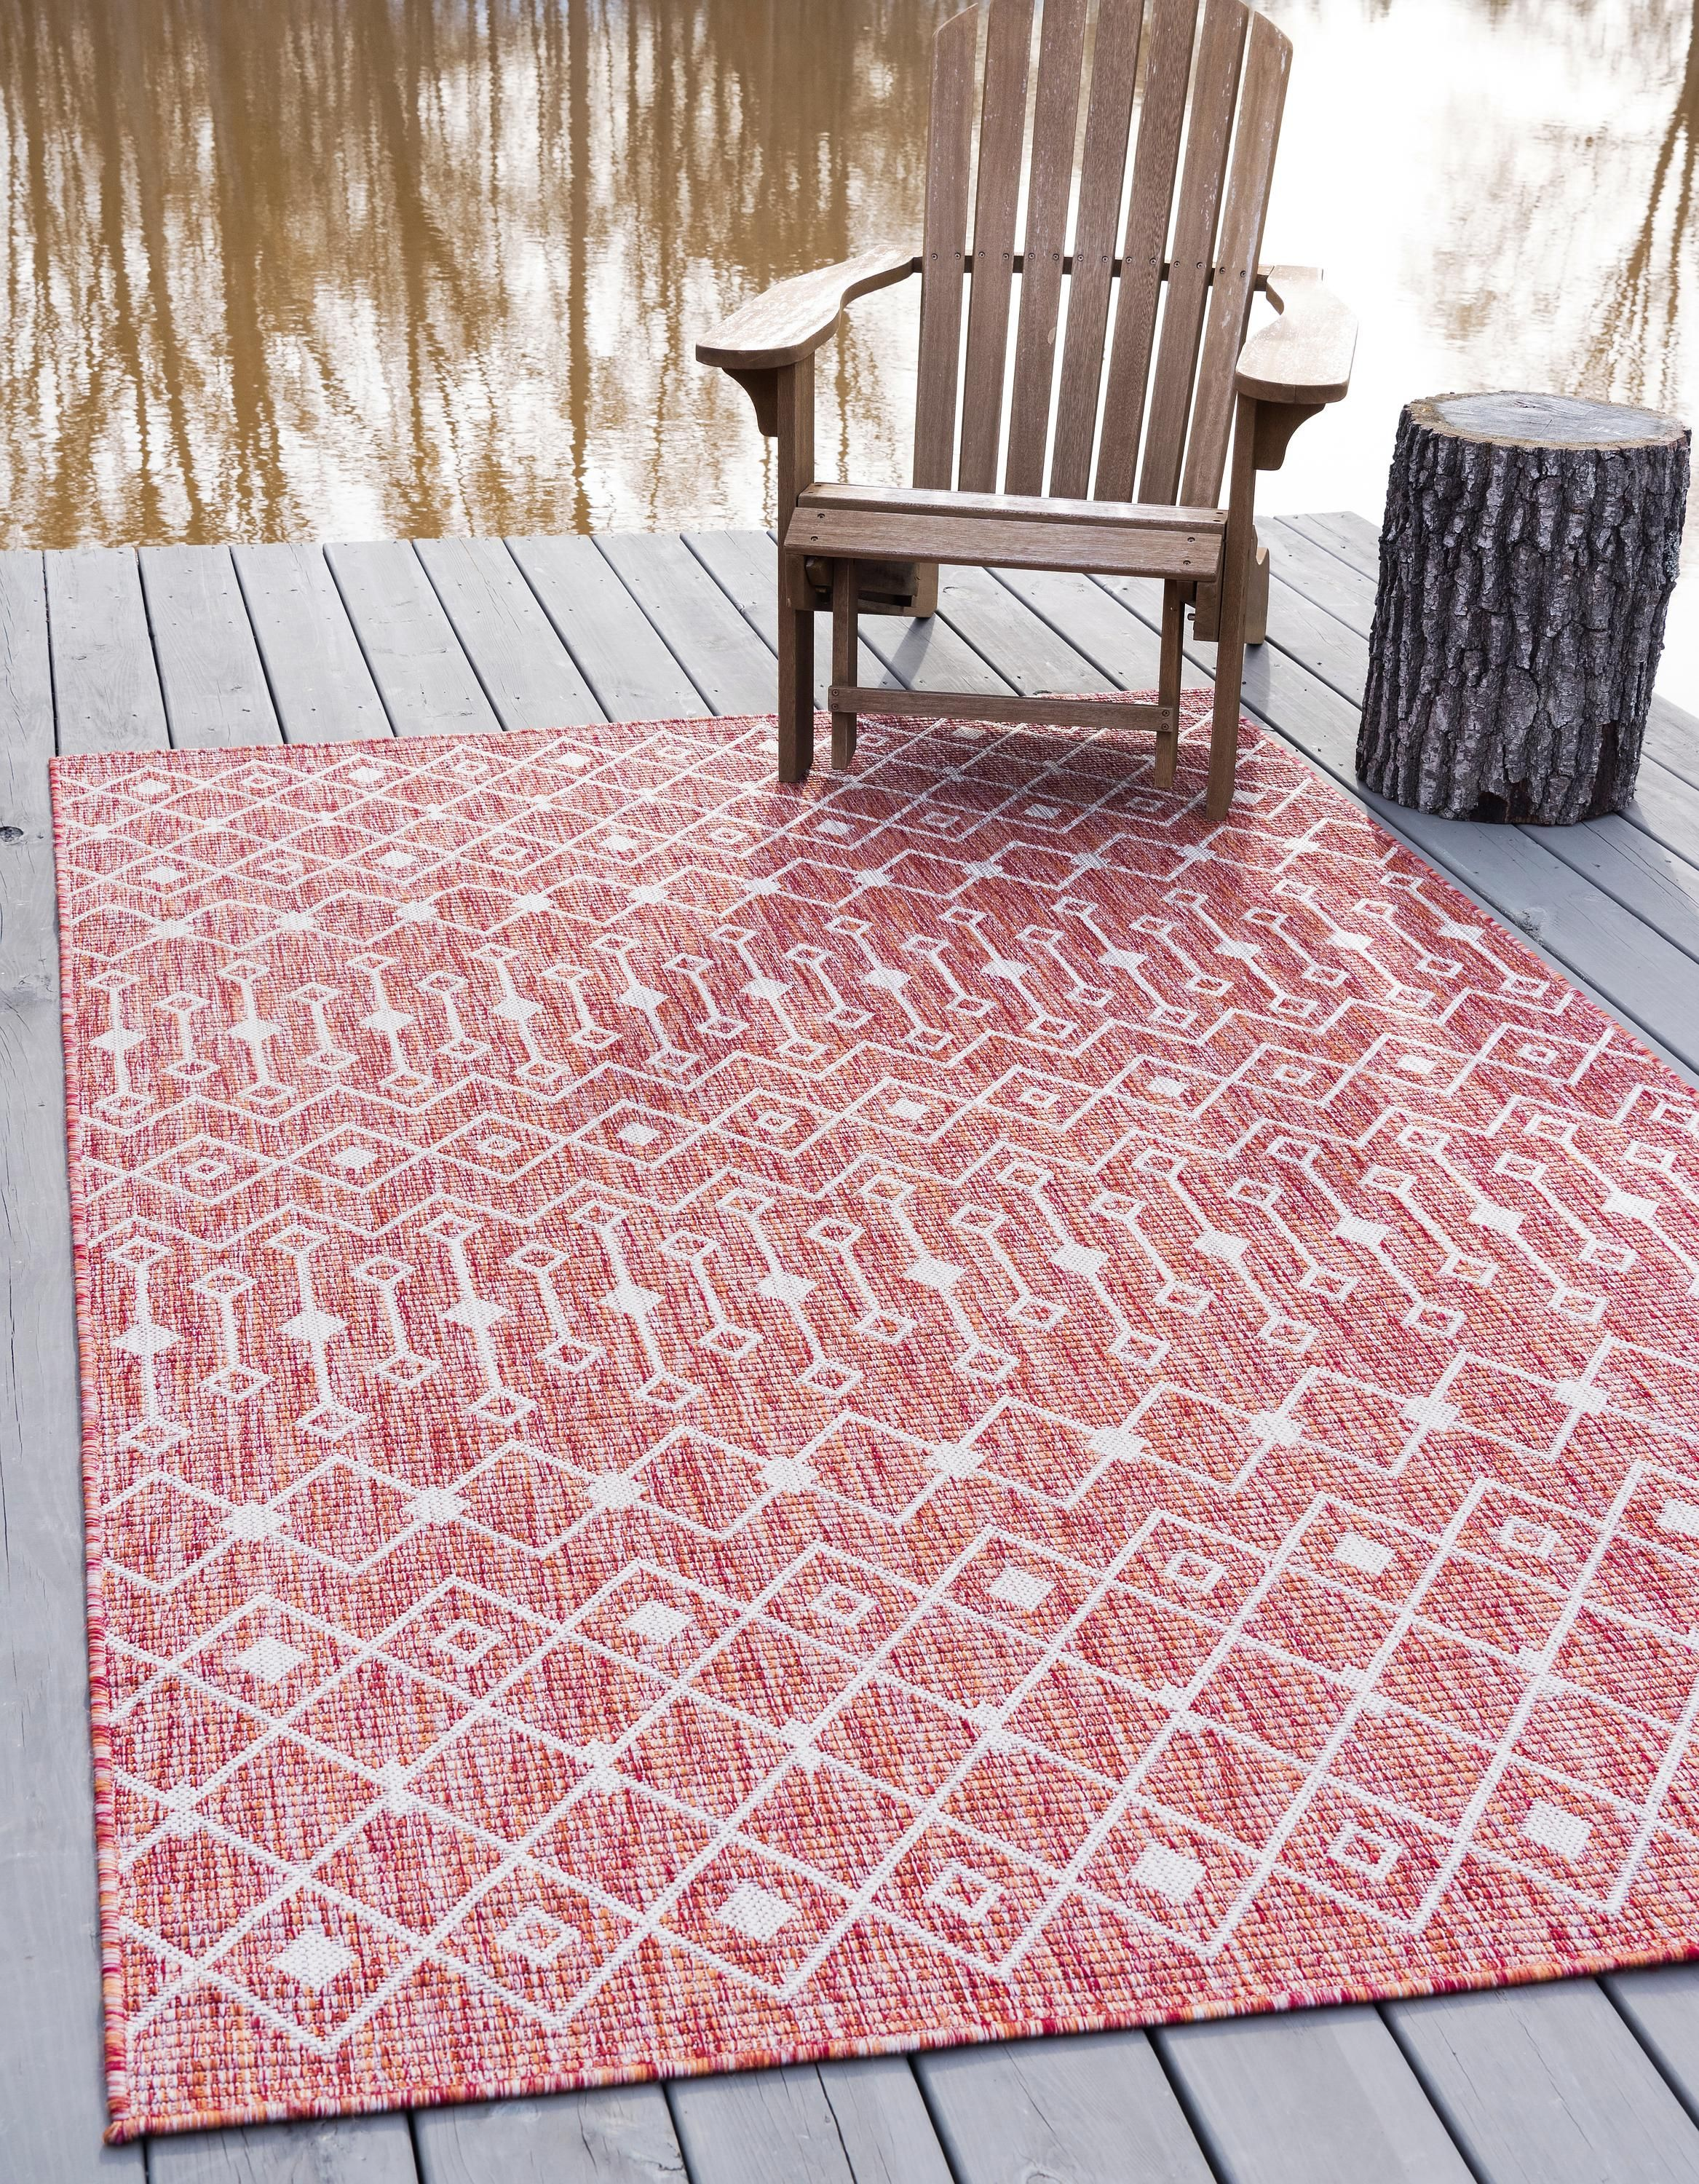 Main Image Of Rug Large Outdoor Rugs Outdoor Trellis Outdoor Rugs Patio